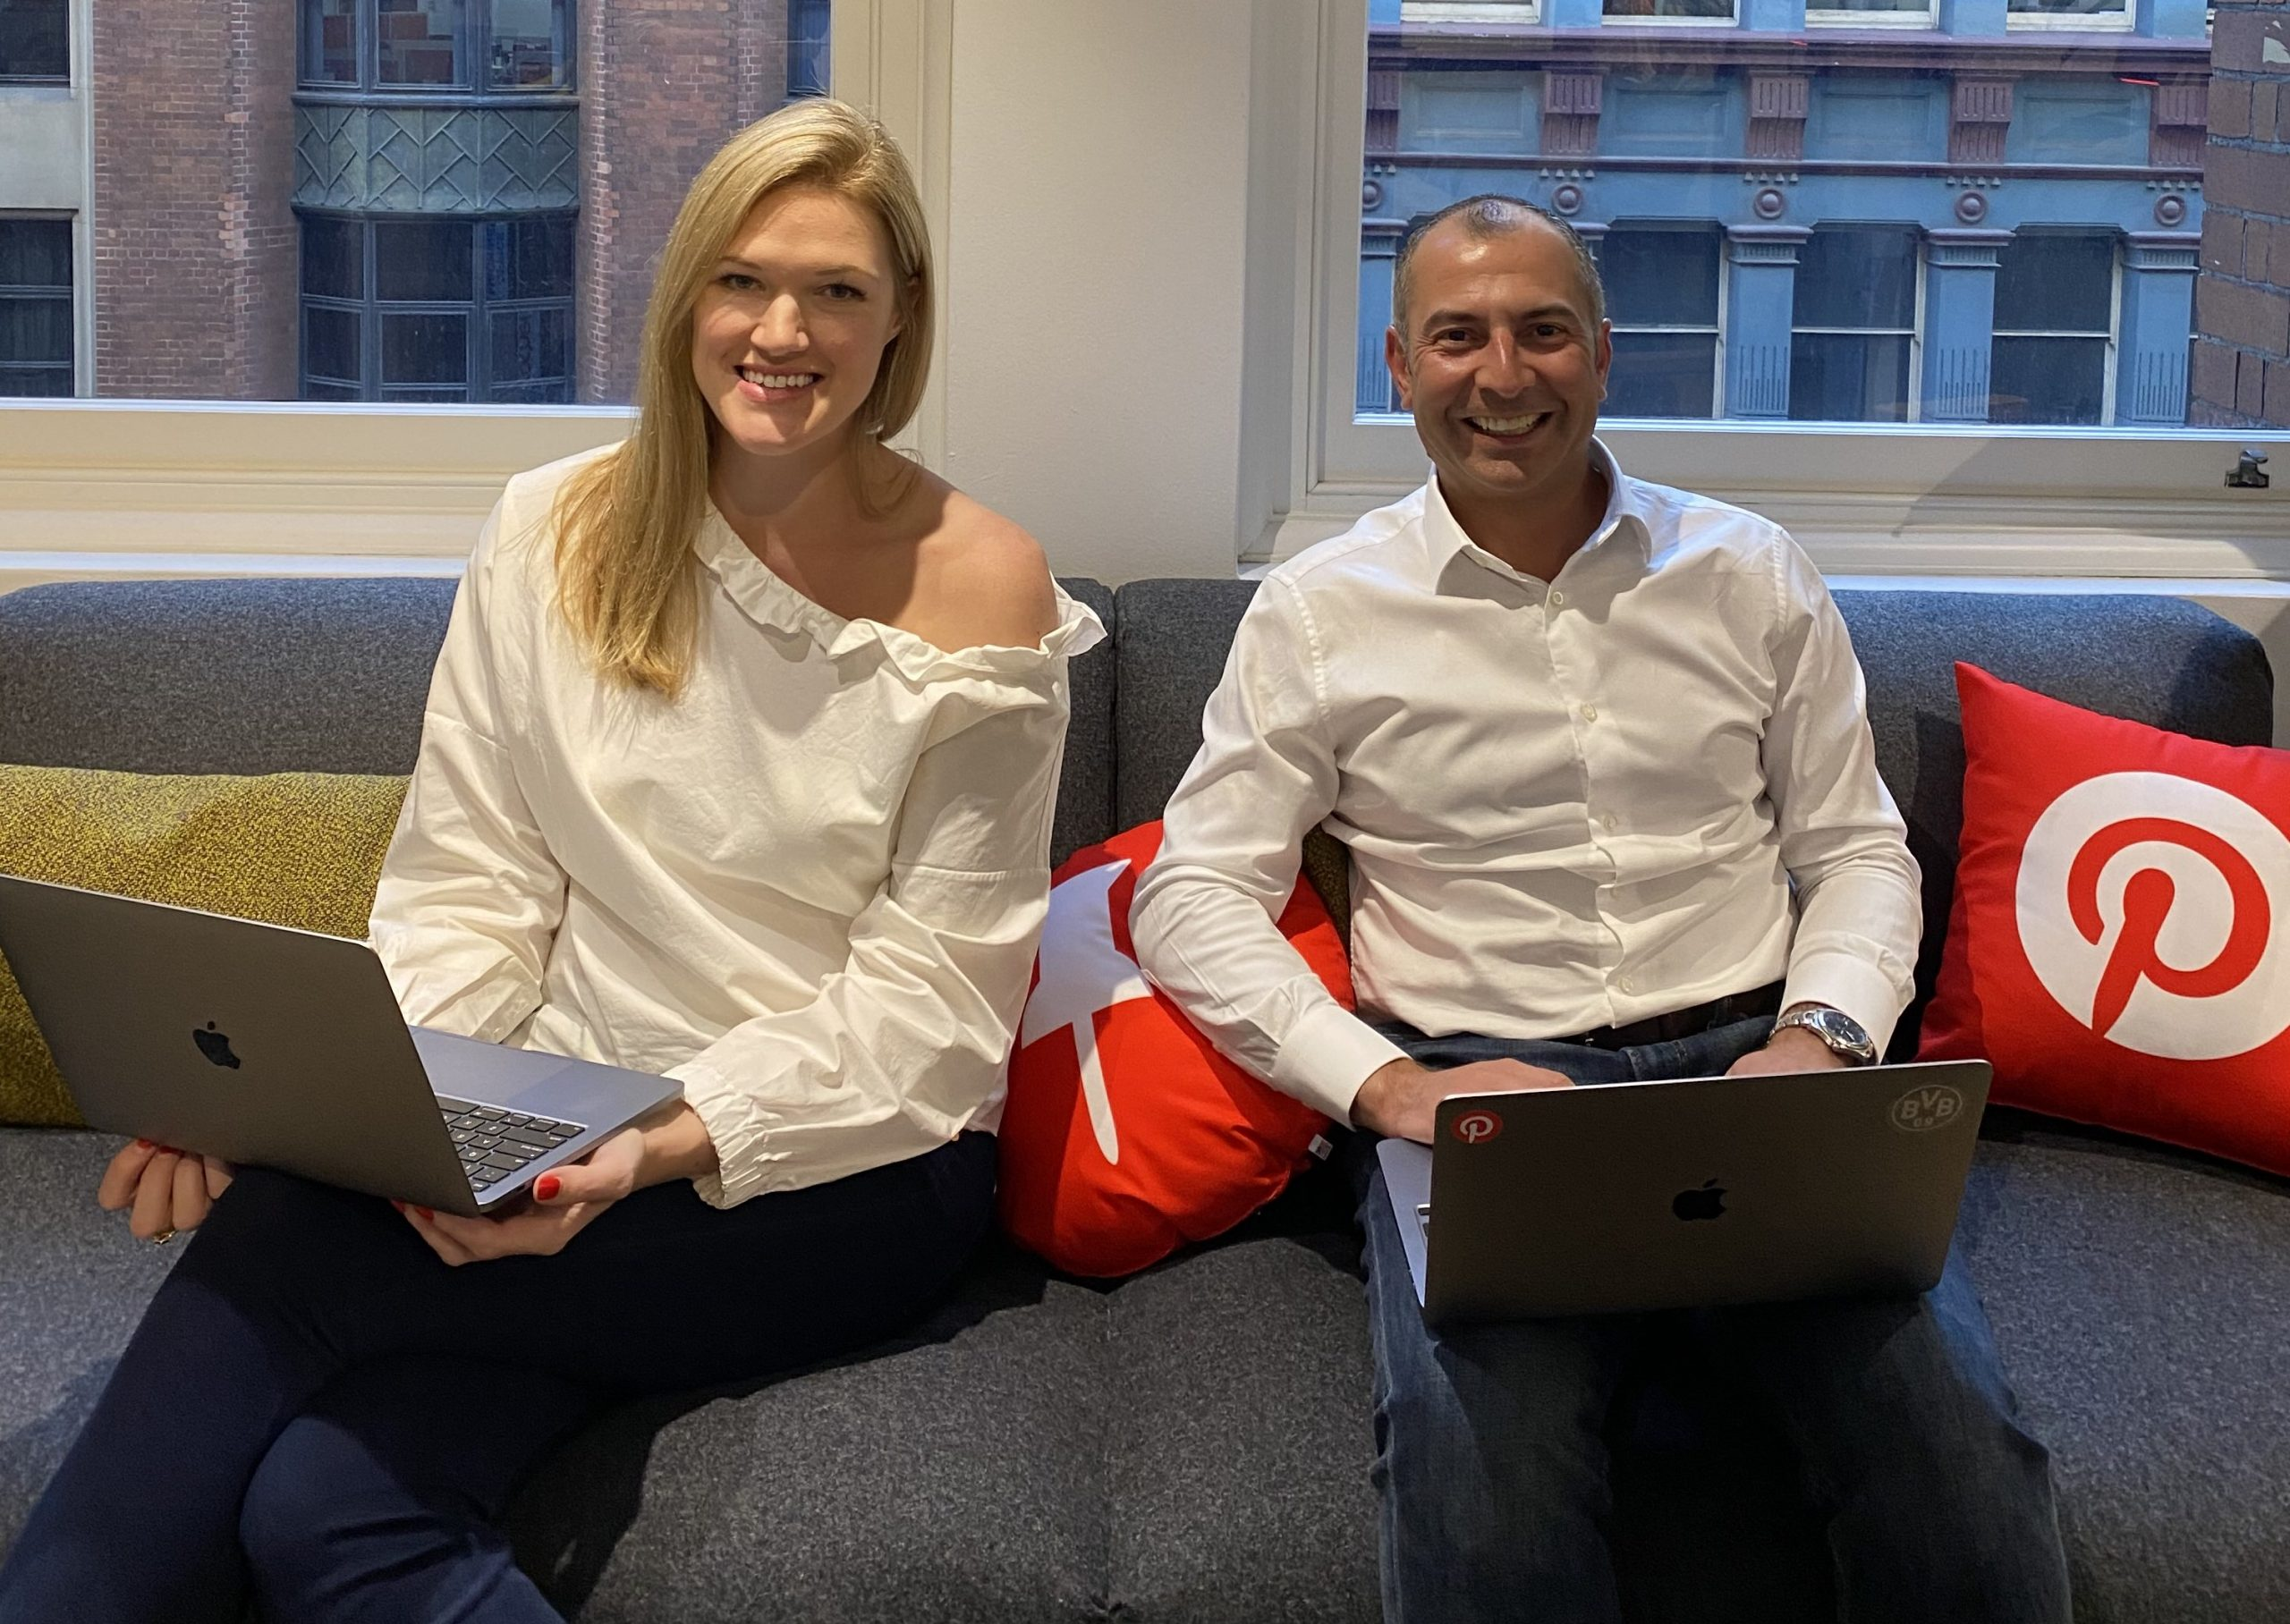 Lottie Laws and Sam Christou on a couch with a Pinterest throw pillow